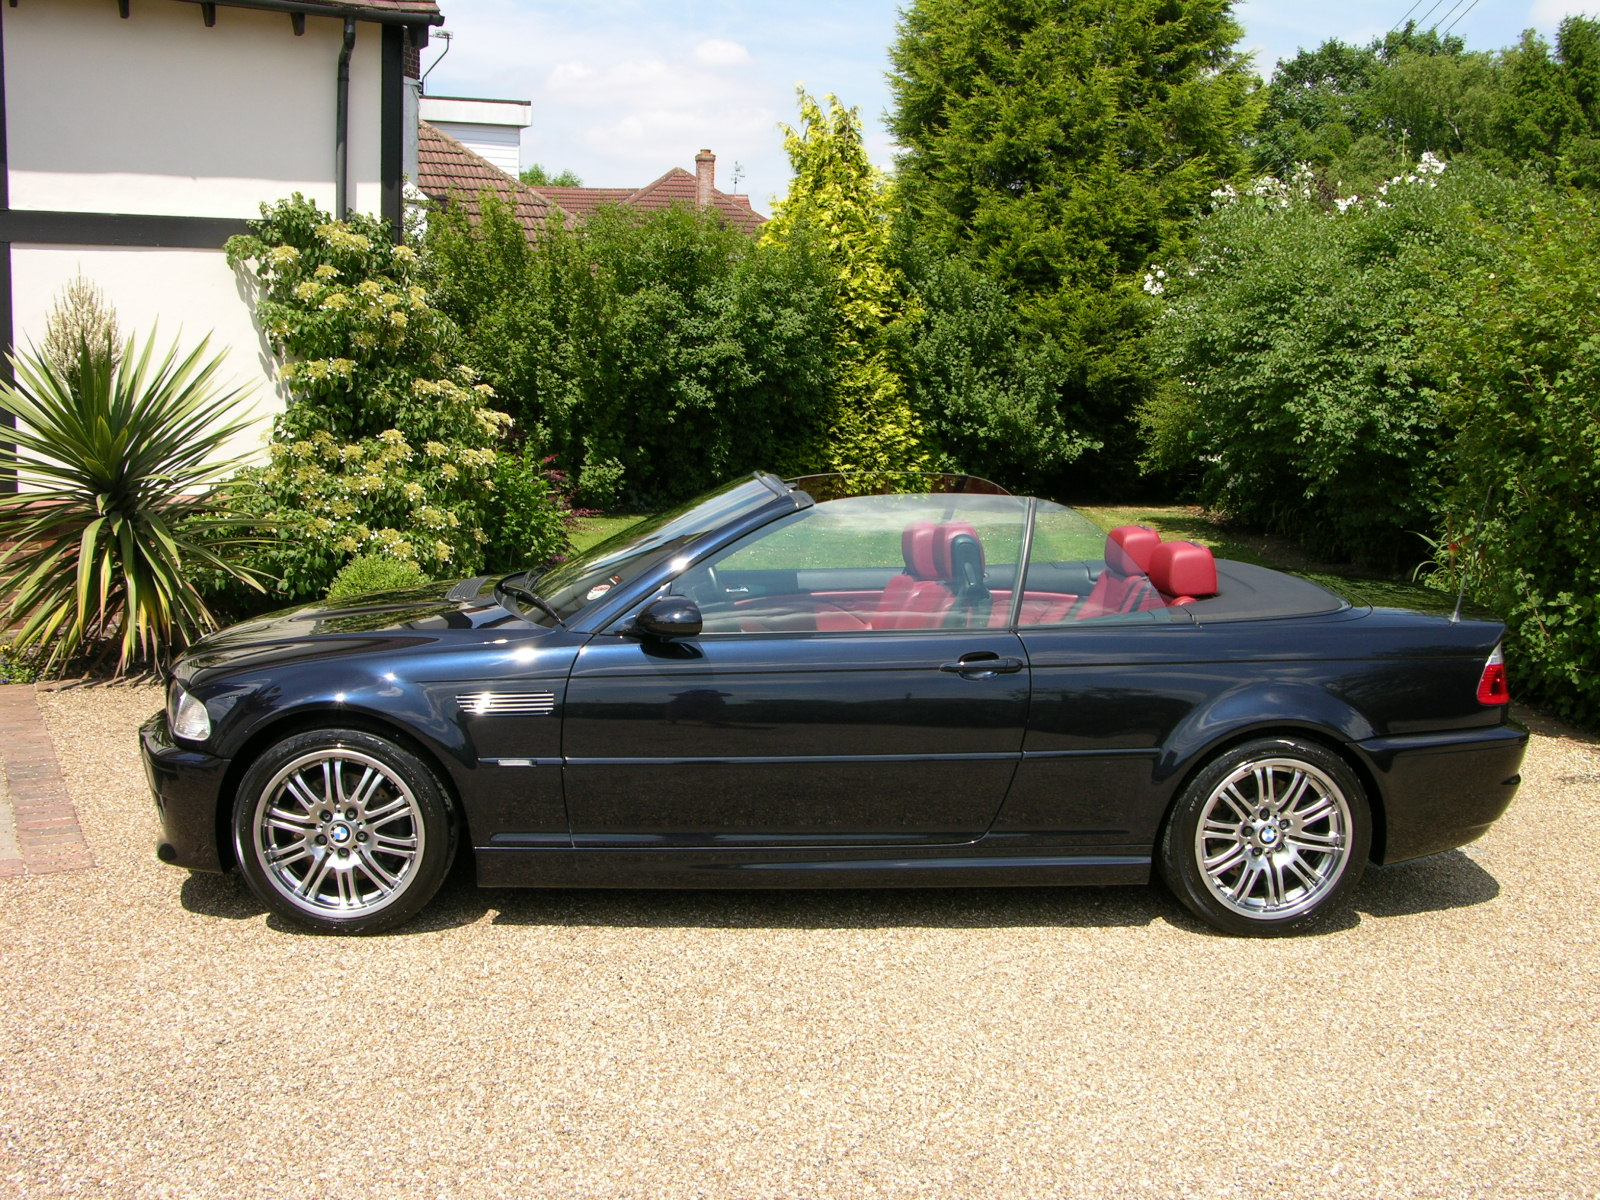 File Bmw M3 E46 Convertible Flickr The Car Spy 16 Jpg Wikimedia Commons